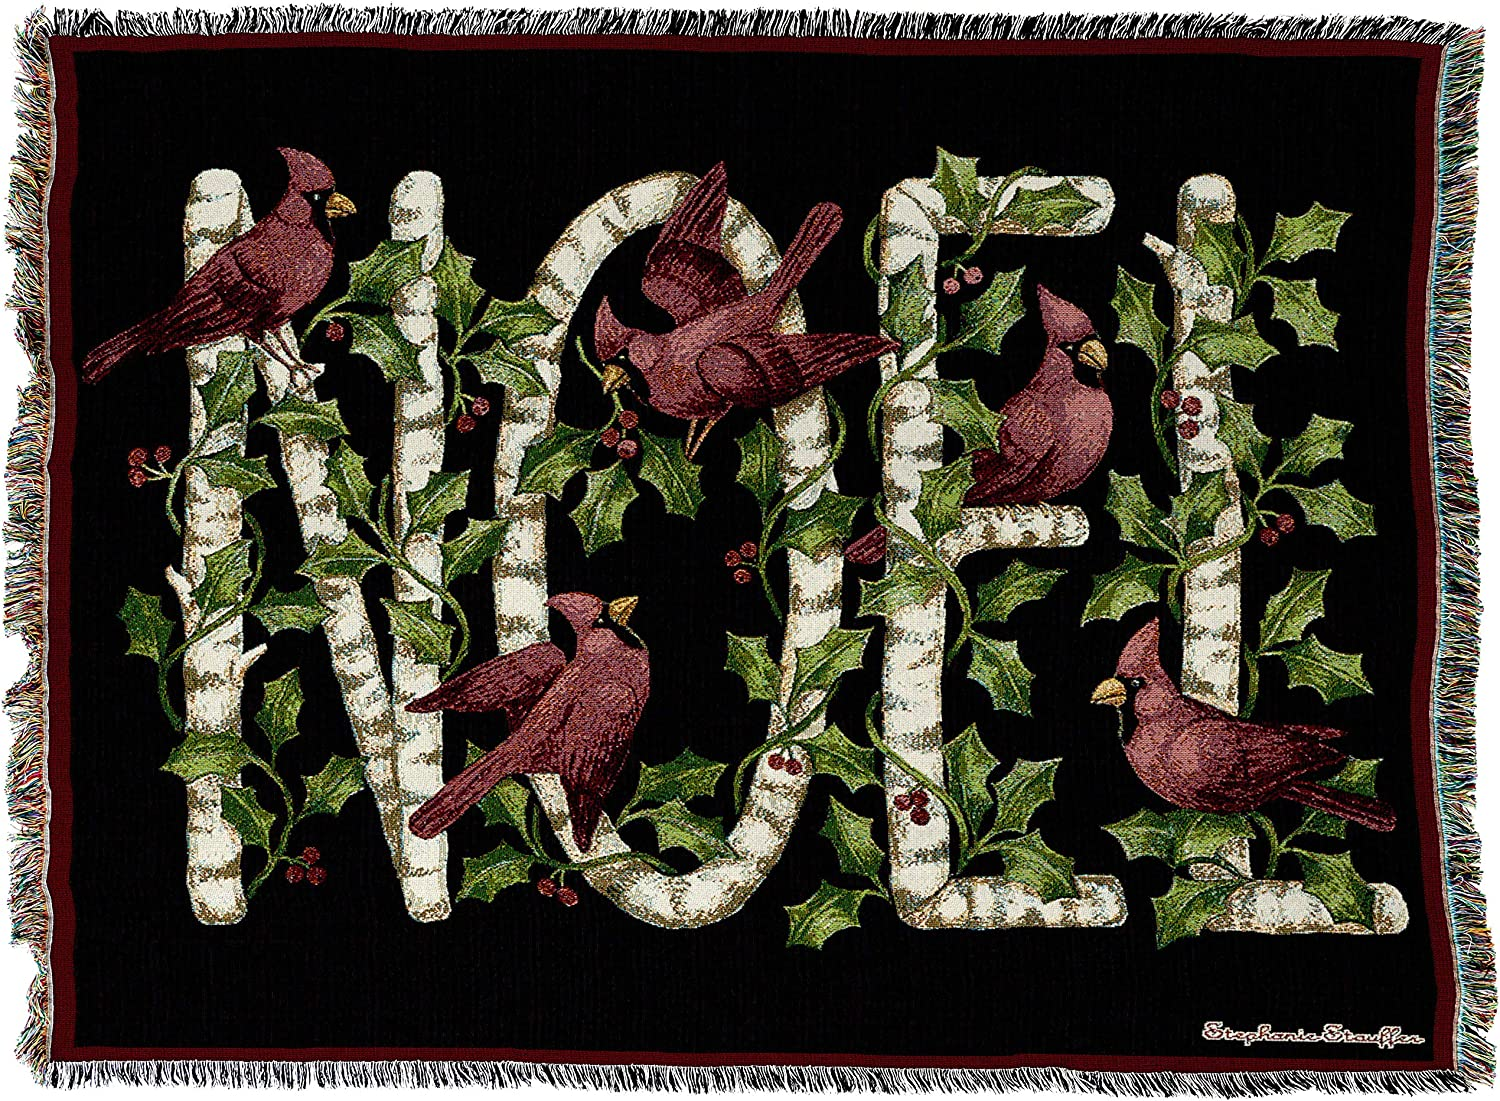 B001GDN7C8 Pure Country Weavers Noel Christmas Cardinal Throw Blanket Woven from 100% Cotton Made in USA 72x54 A1o2FMKLmlL